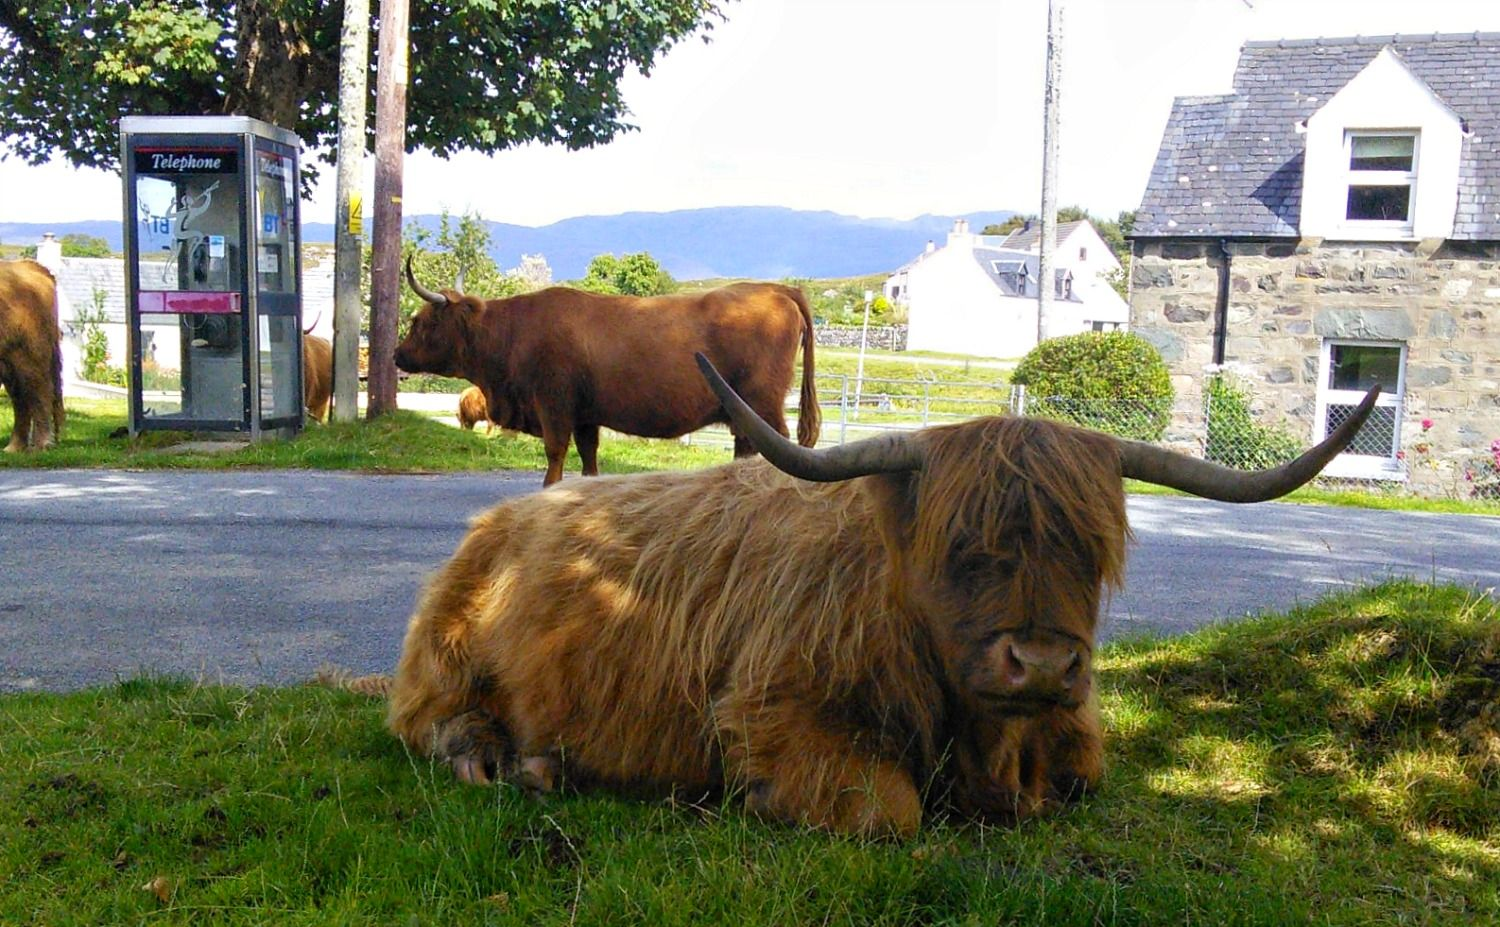 Very few Highland cows own their own smartphones, as the buttons are too small for their hooves. So they have to hang around public phone boxes if they want to get in touch with other cows or their coworkers. This is a typical scene in Duirinish in the north-west Highlands.